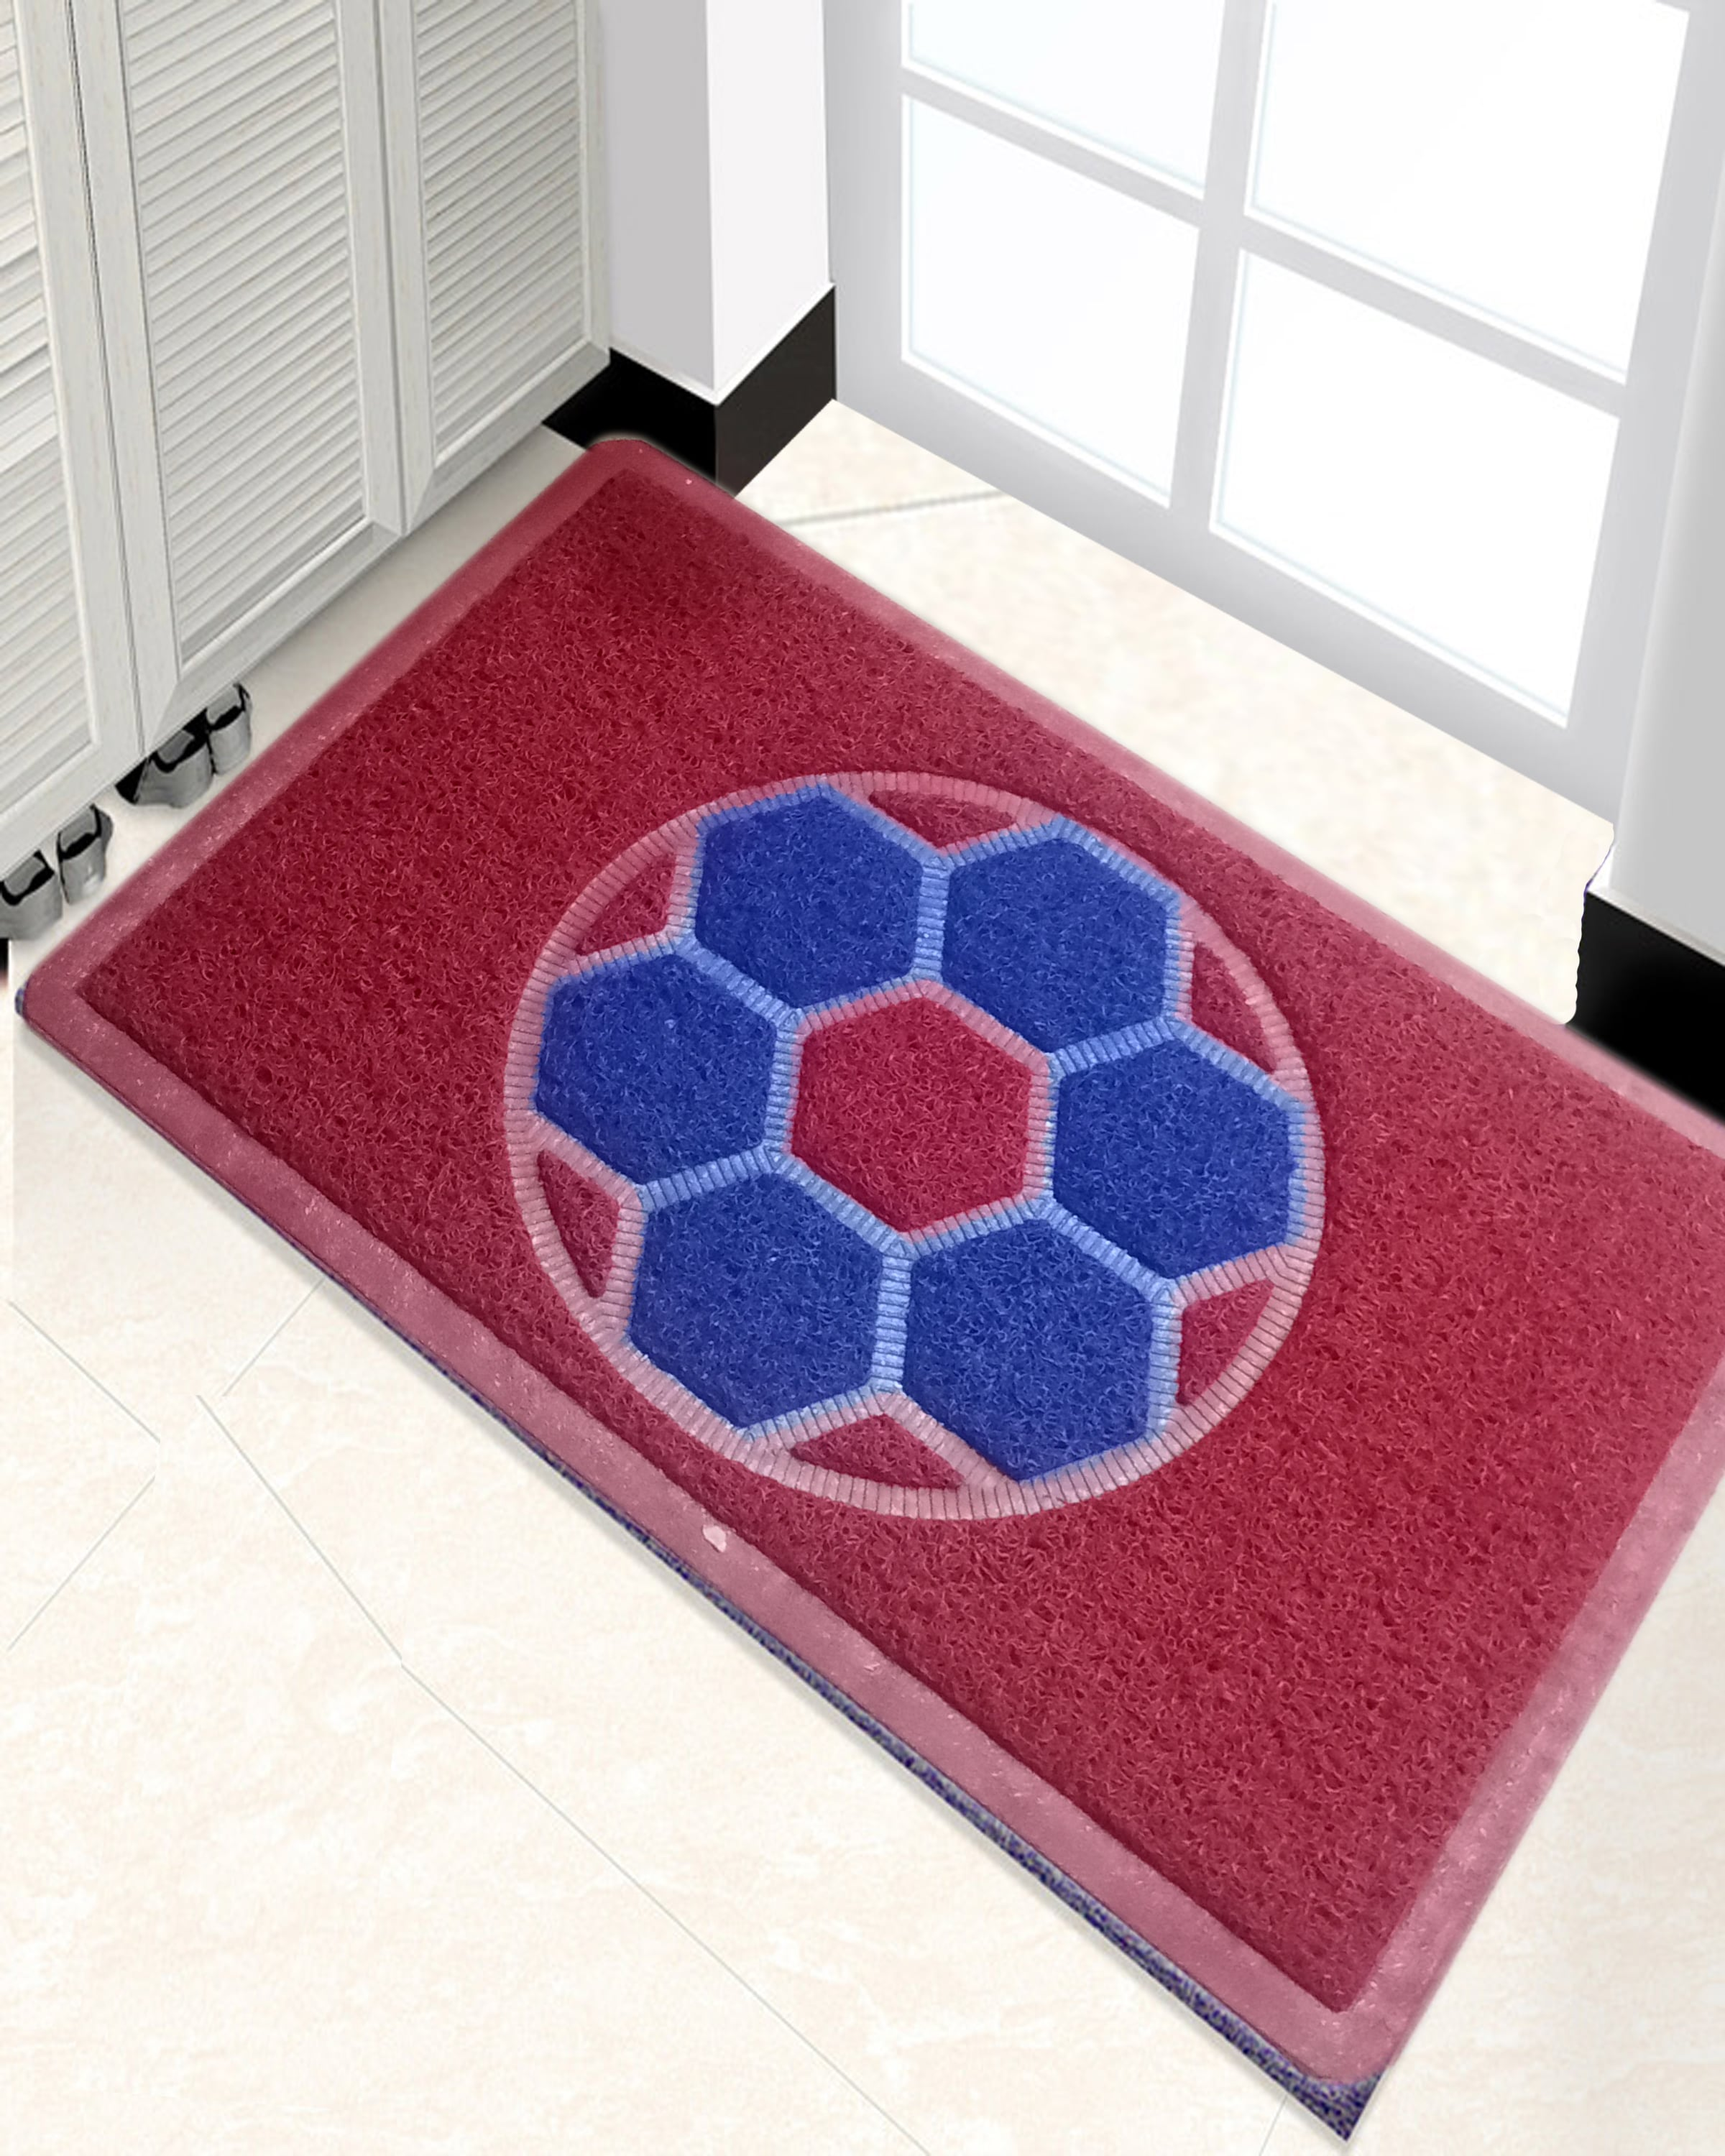 Beautiful Multicolour Rugs / Floor mats Rubber and Grass Mat stuff - For Home Decoration to Stop Dust and Wet Floor - Soft and Smooth